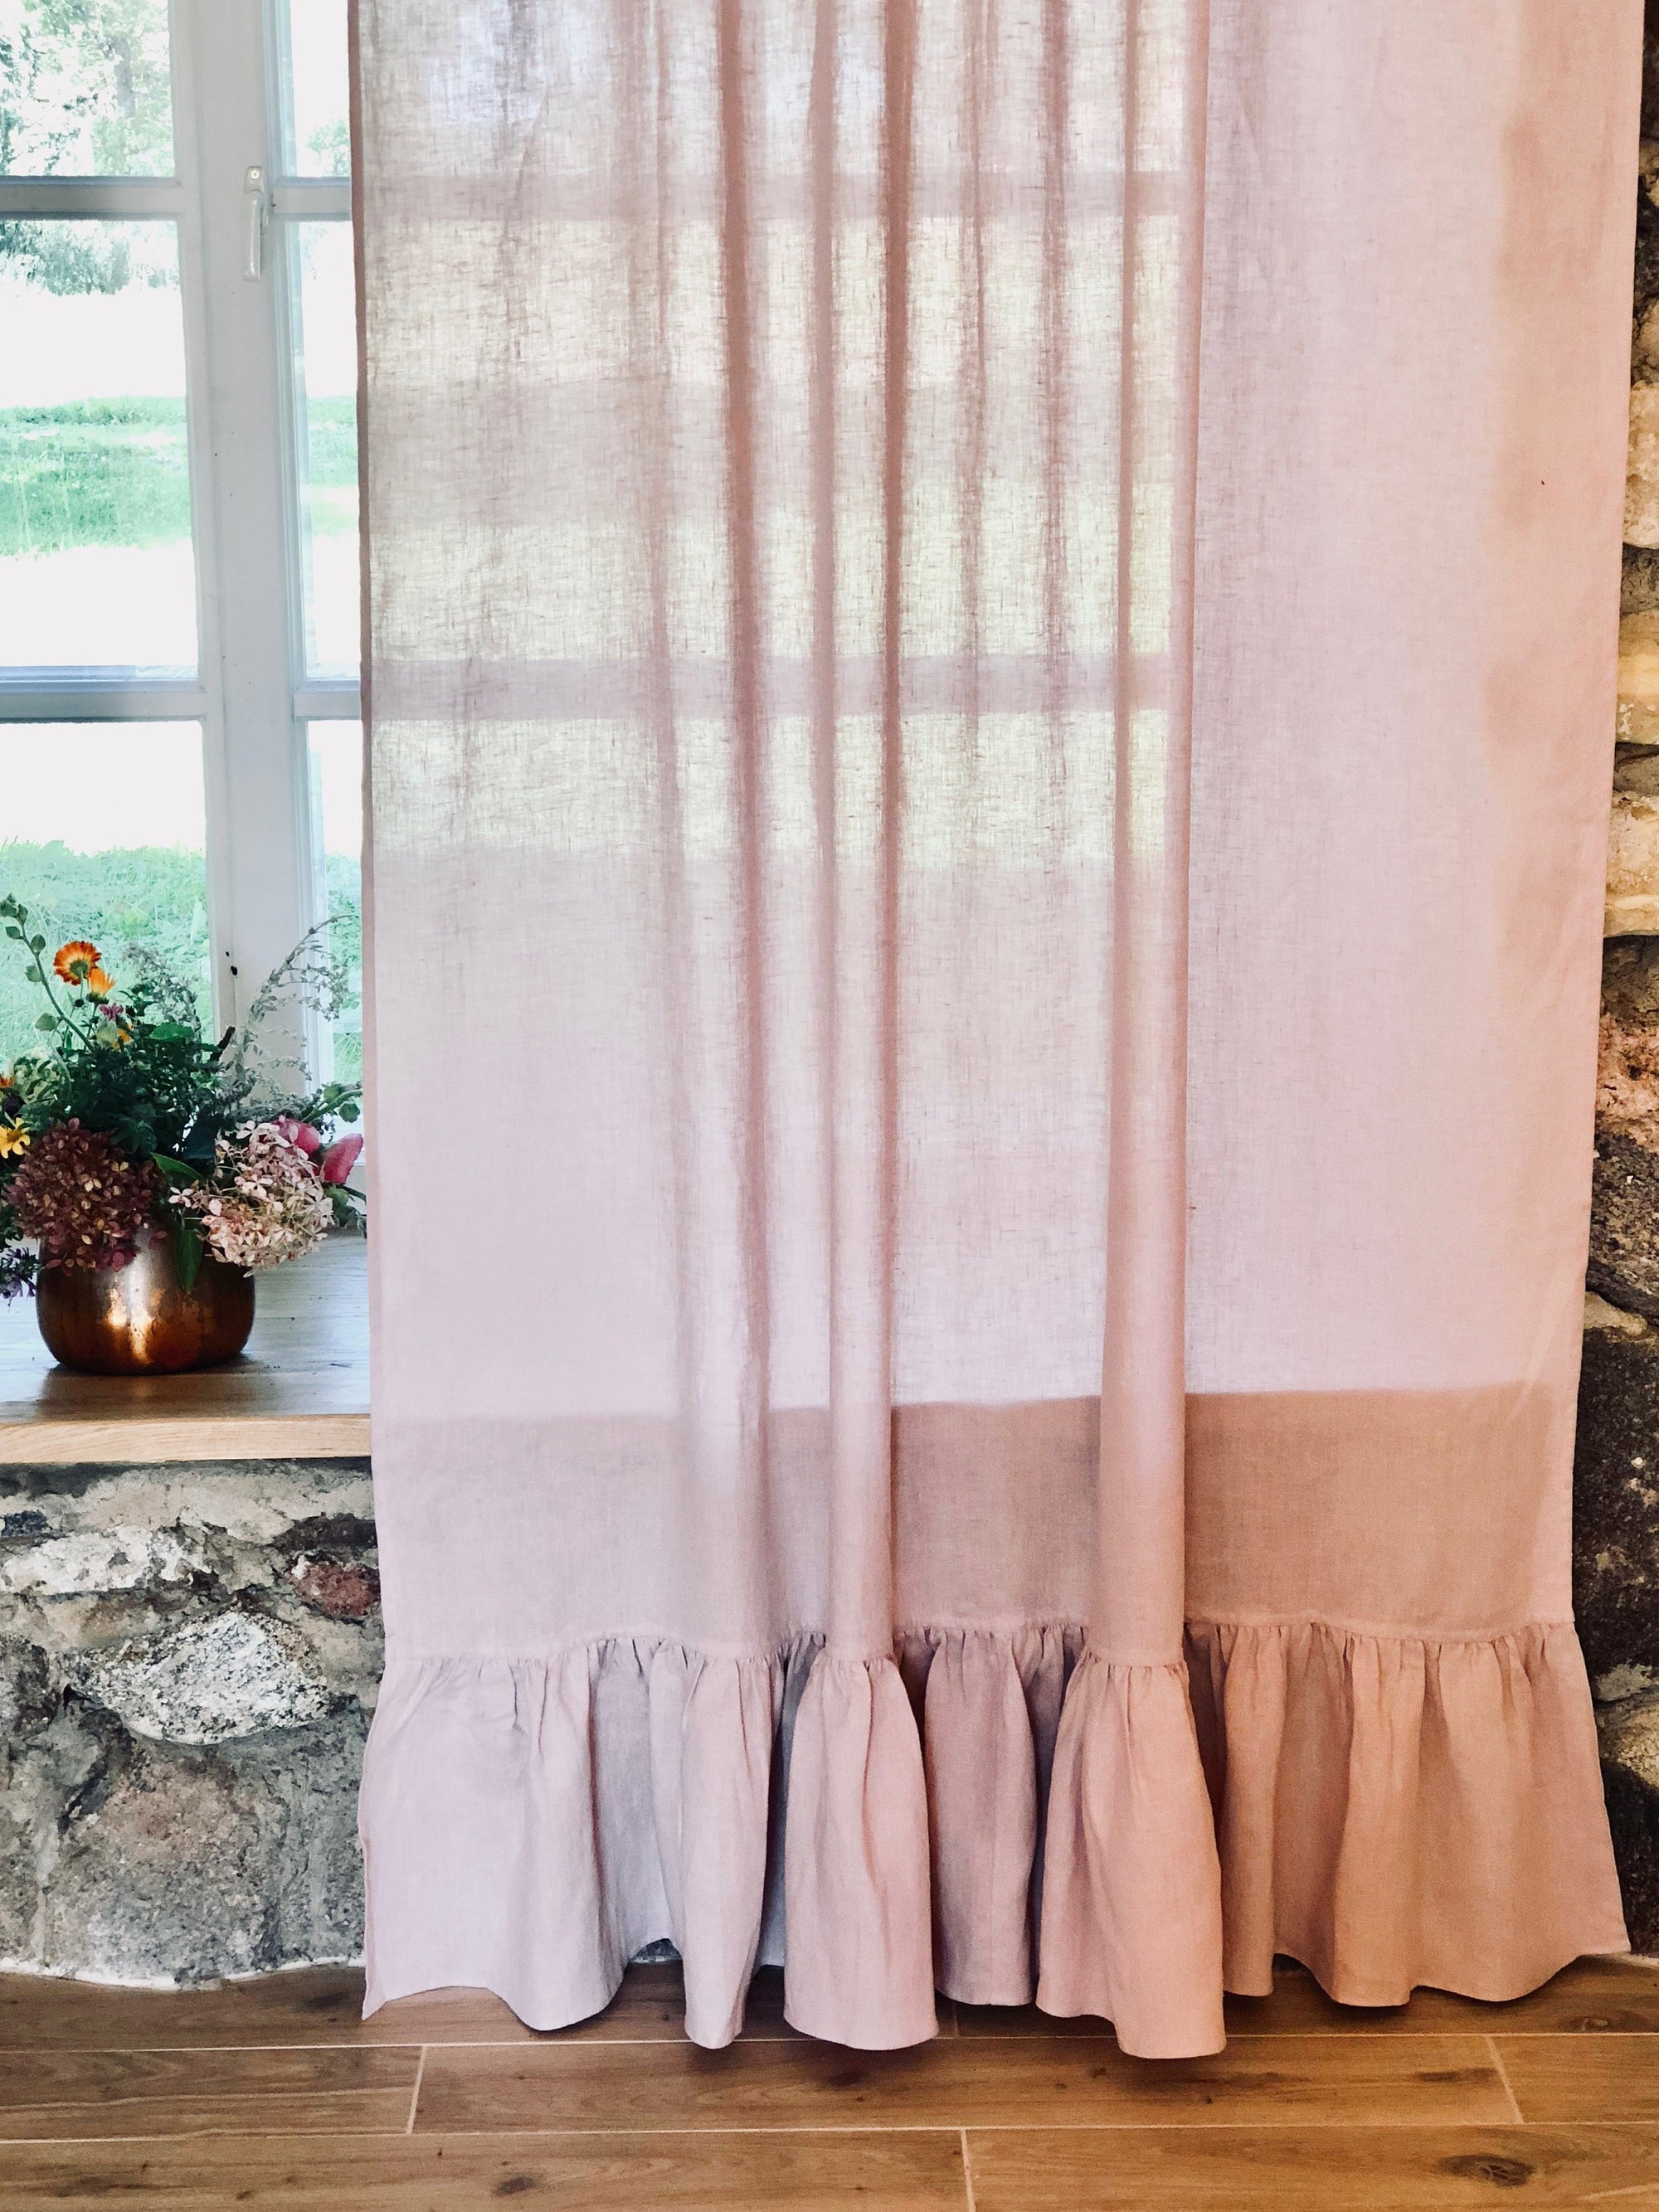 Linen Curtain Panel with Ruffle, Dusty Pink Window Curtains-Linenbee